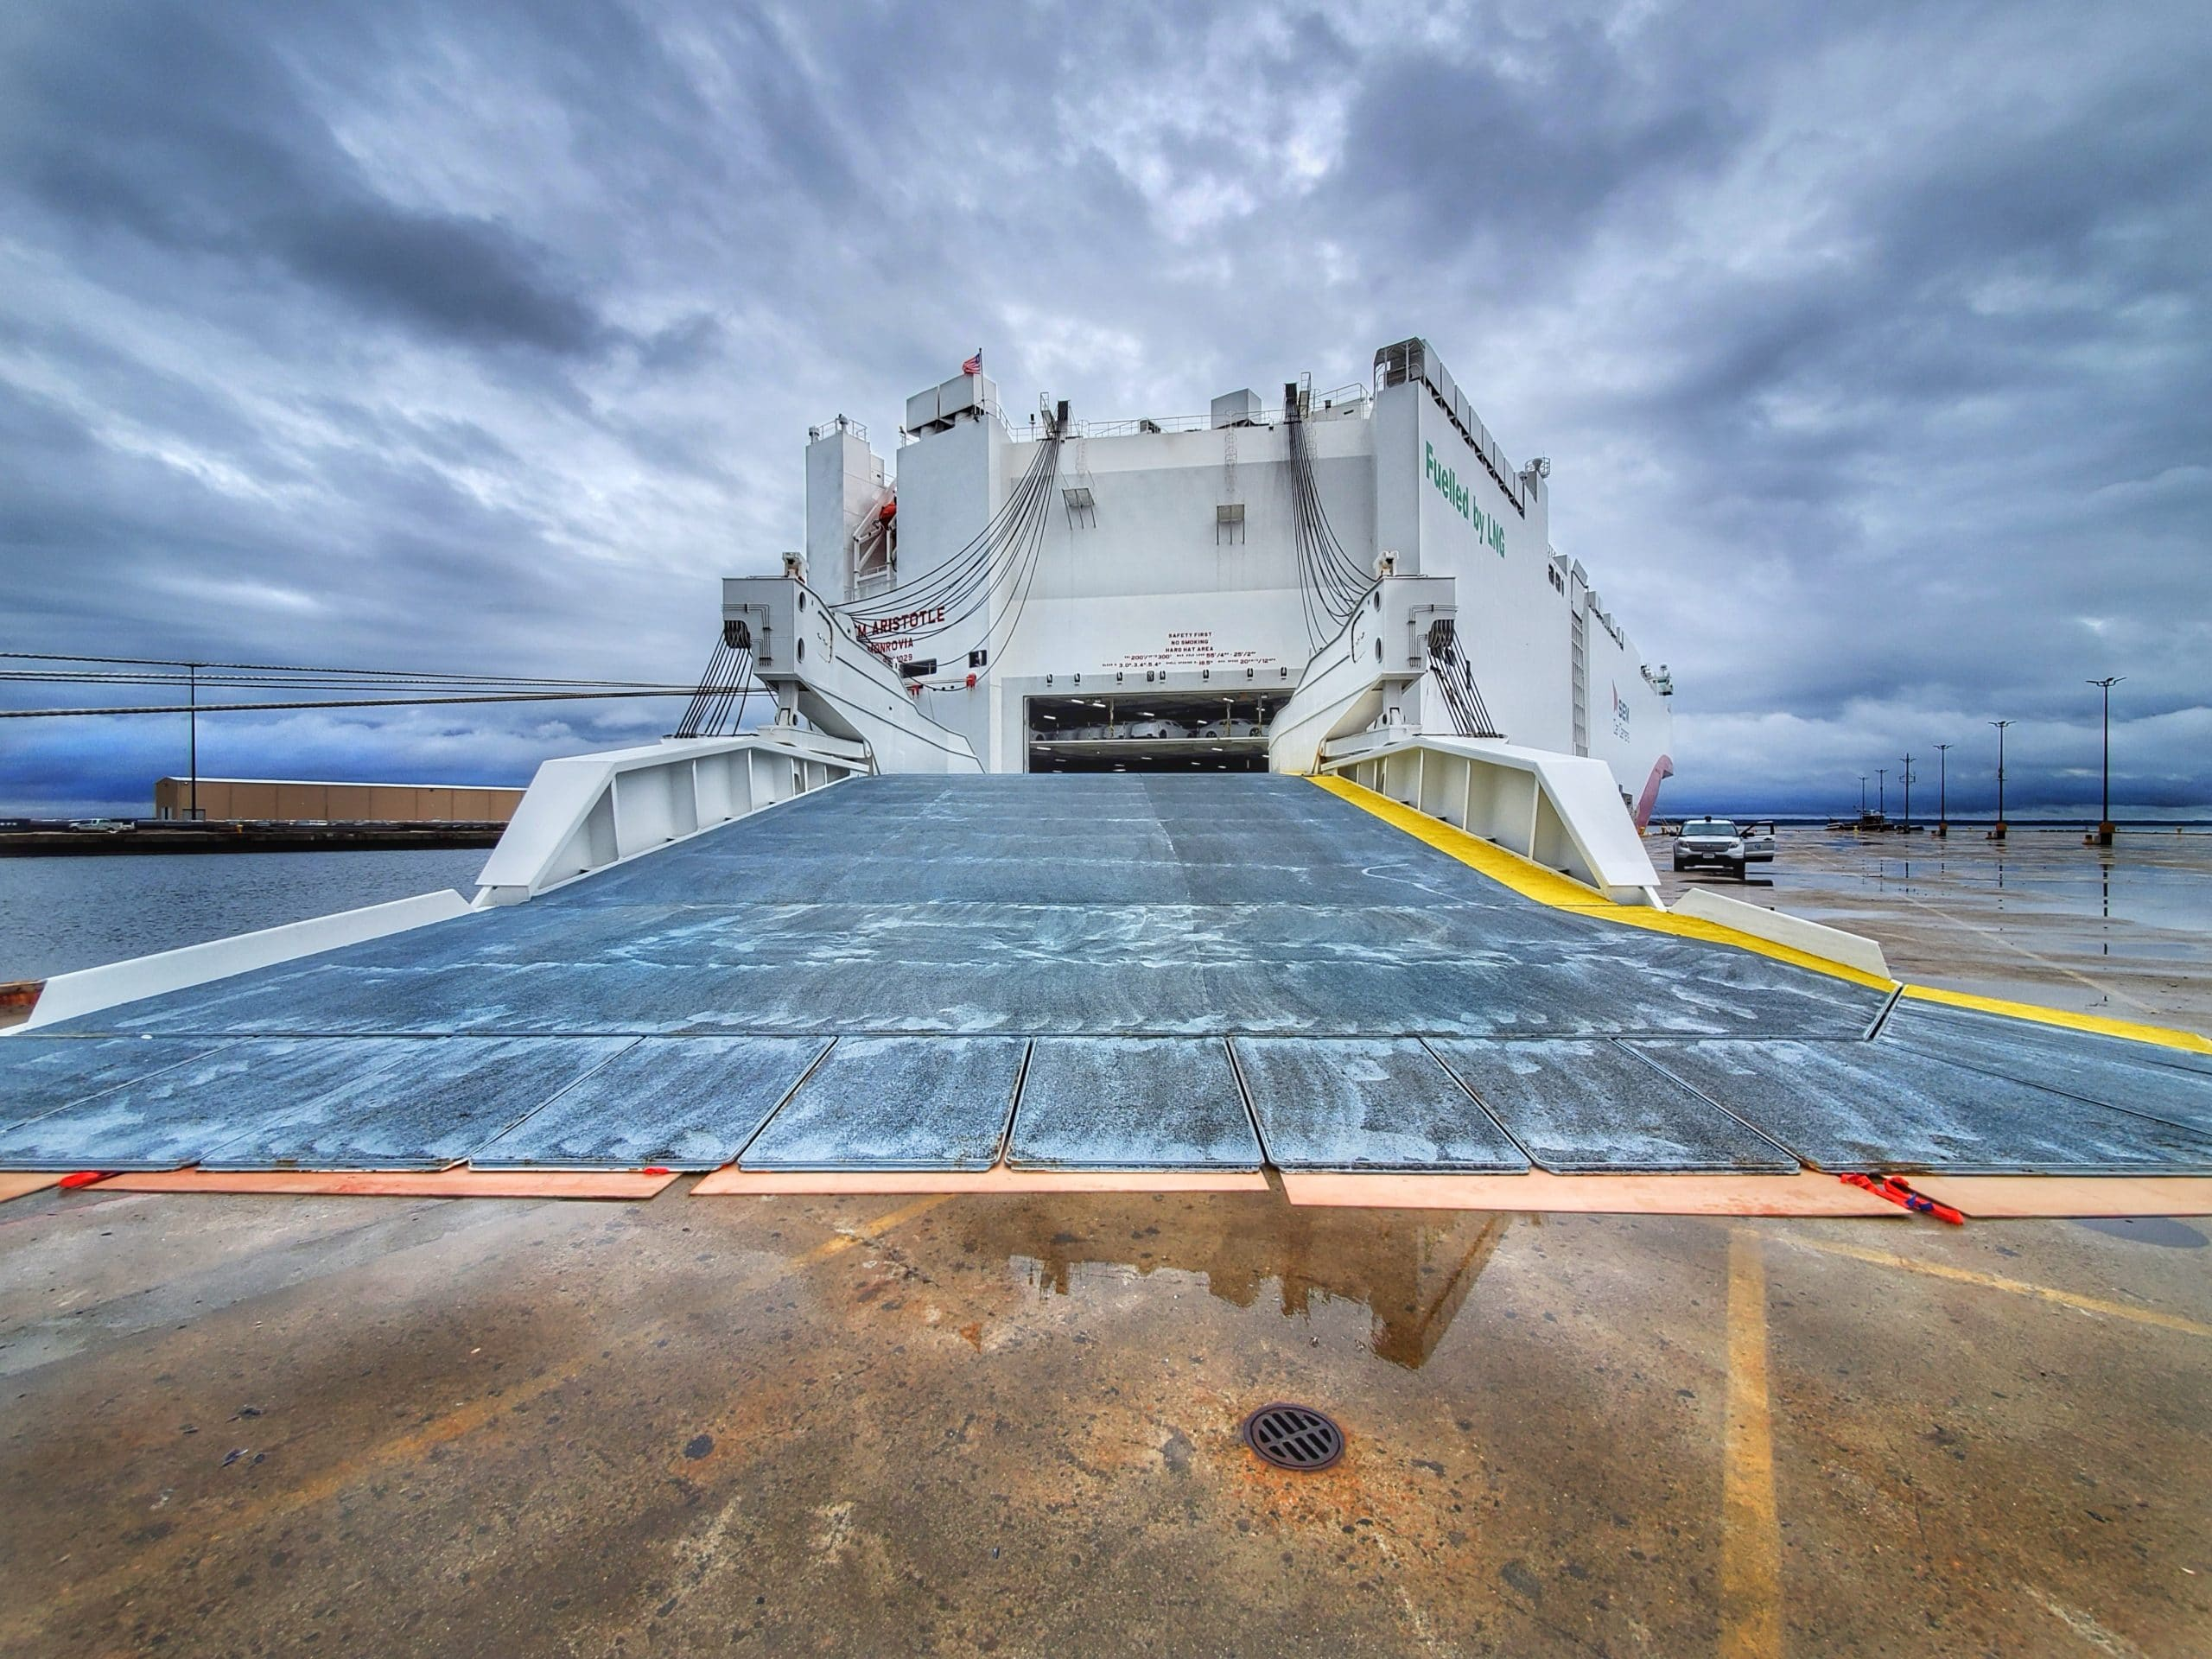 Ship ramp attached to land